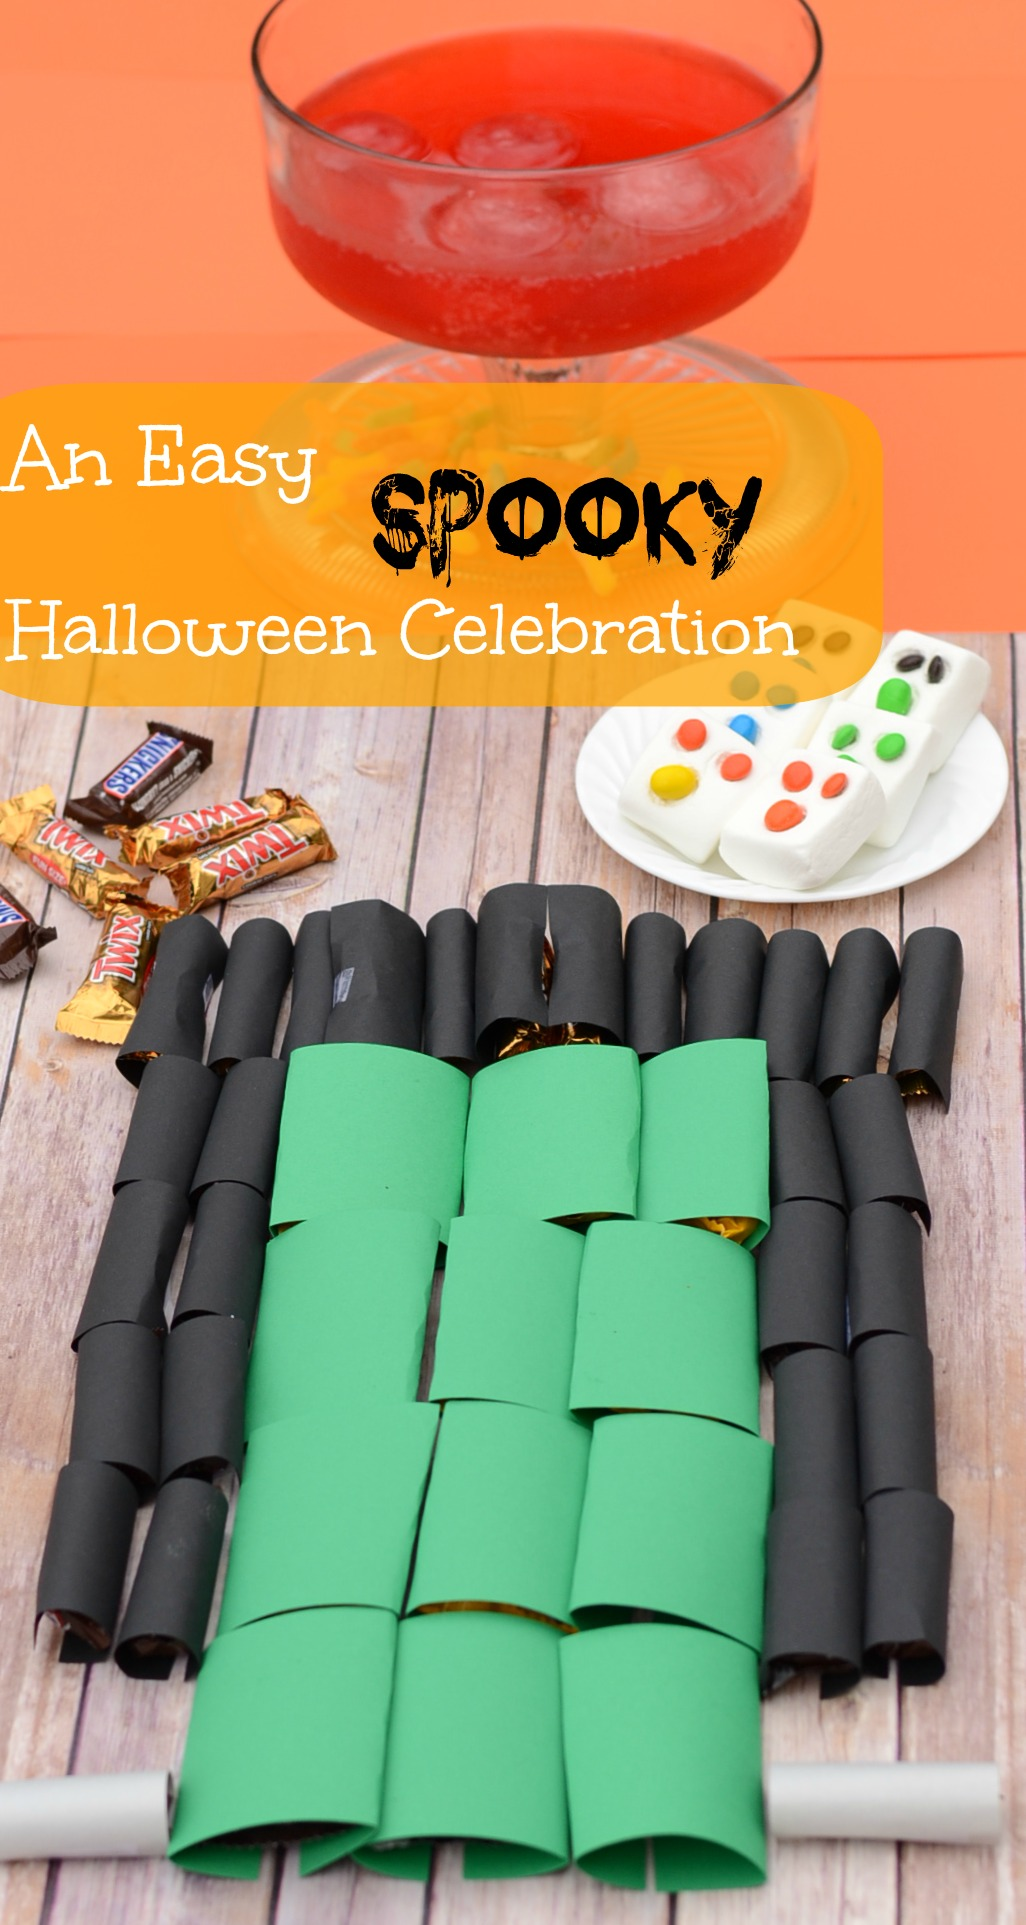 Preschooler's Spooky Halloween Celebration from It Happens in a Blink  #shop #SpookyCelebration #cbias